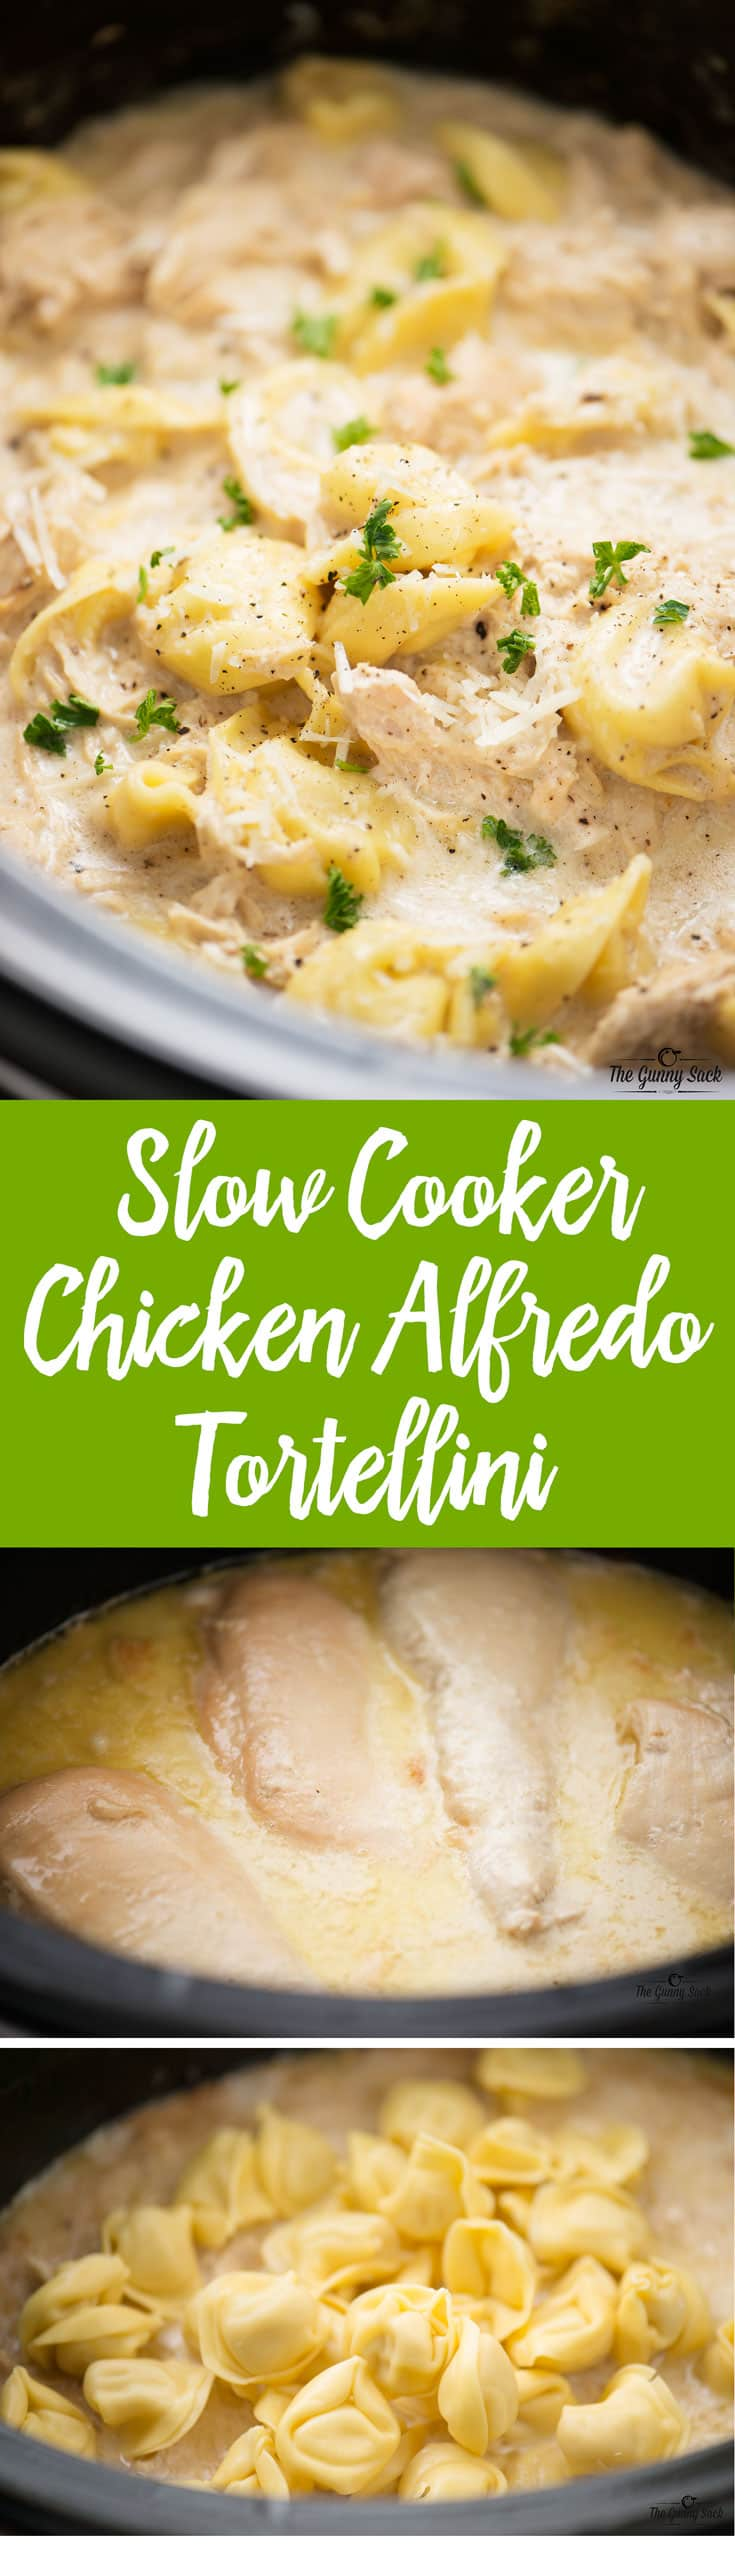 Slow Cooker Chicken Alfredo Tortellini - The Gunny Sack